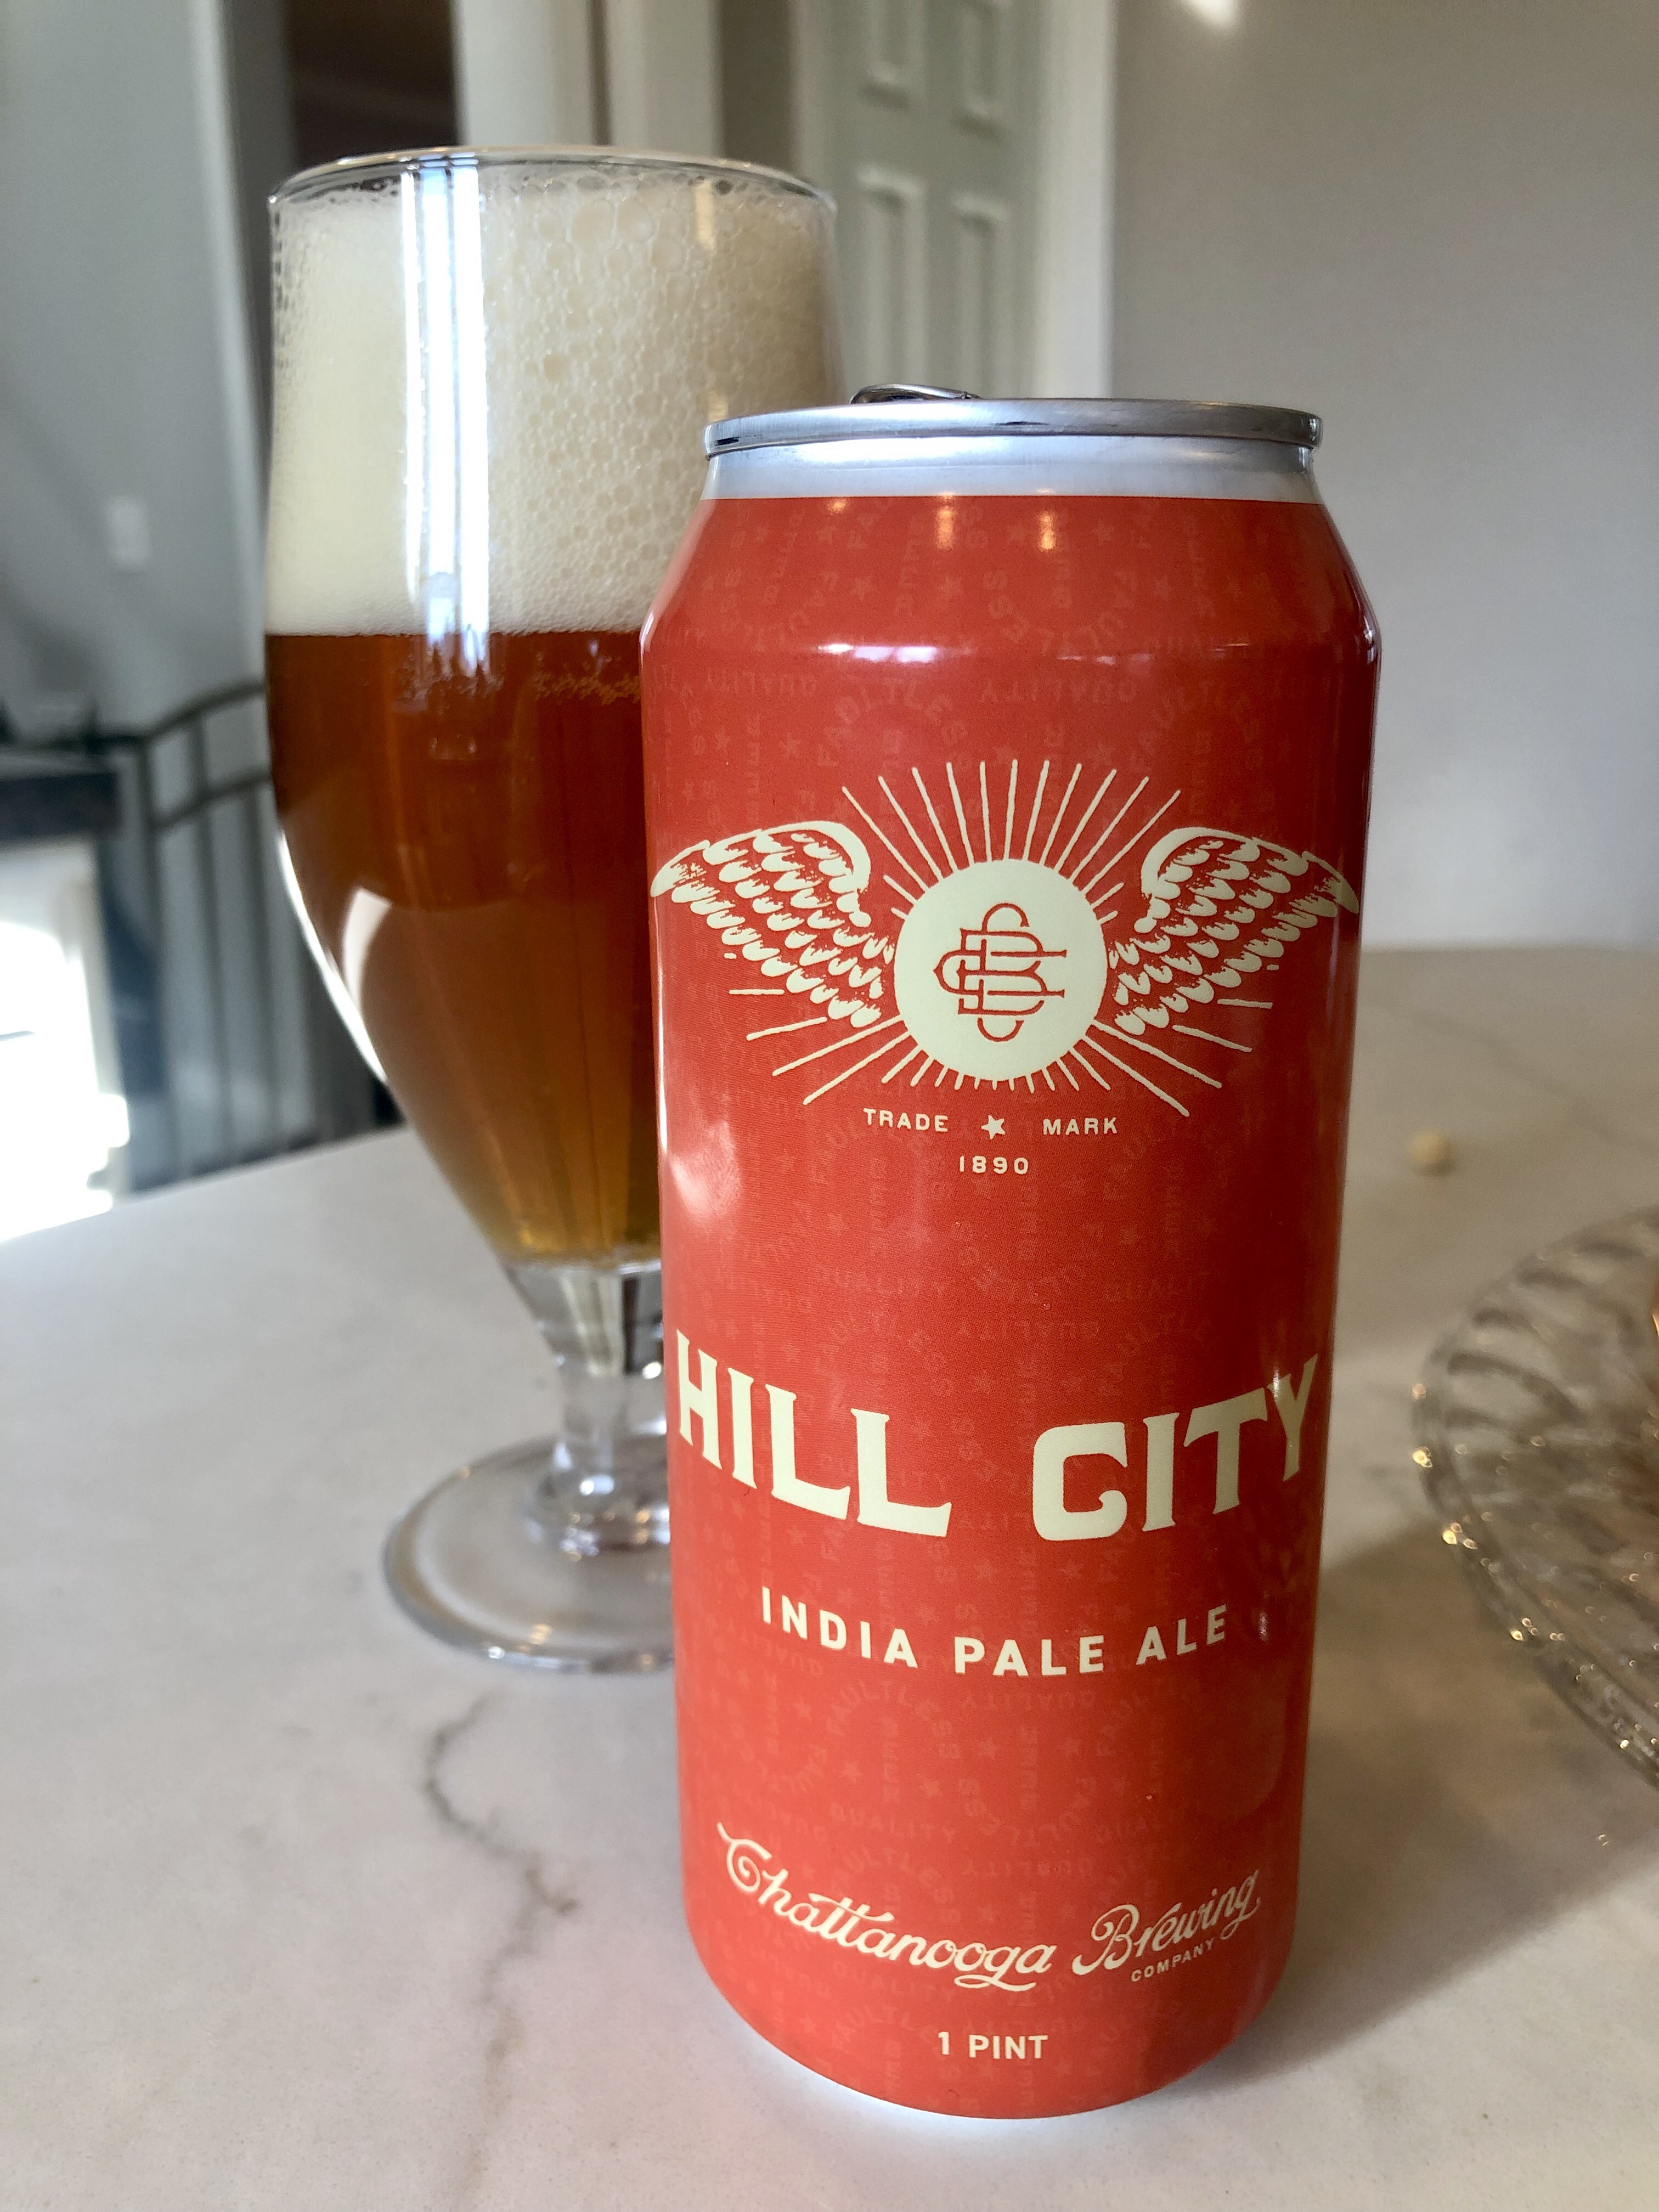 929. Chattanooga Brewing - Hill City IPA